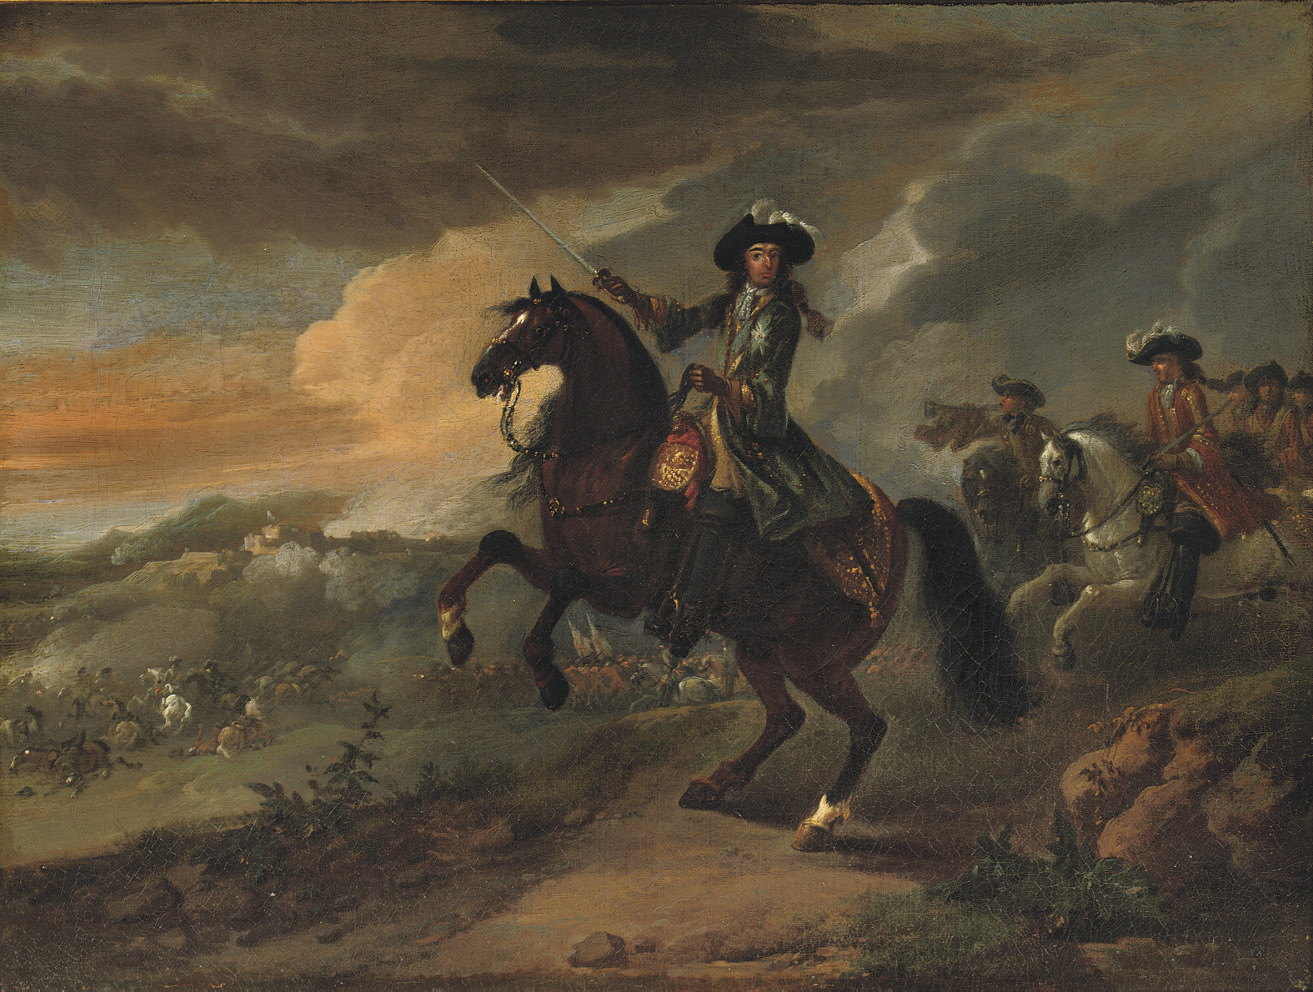 William III leading his troops at the Battle of Namur